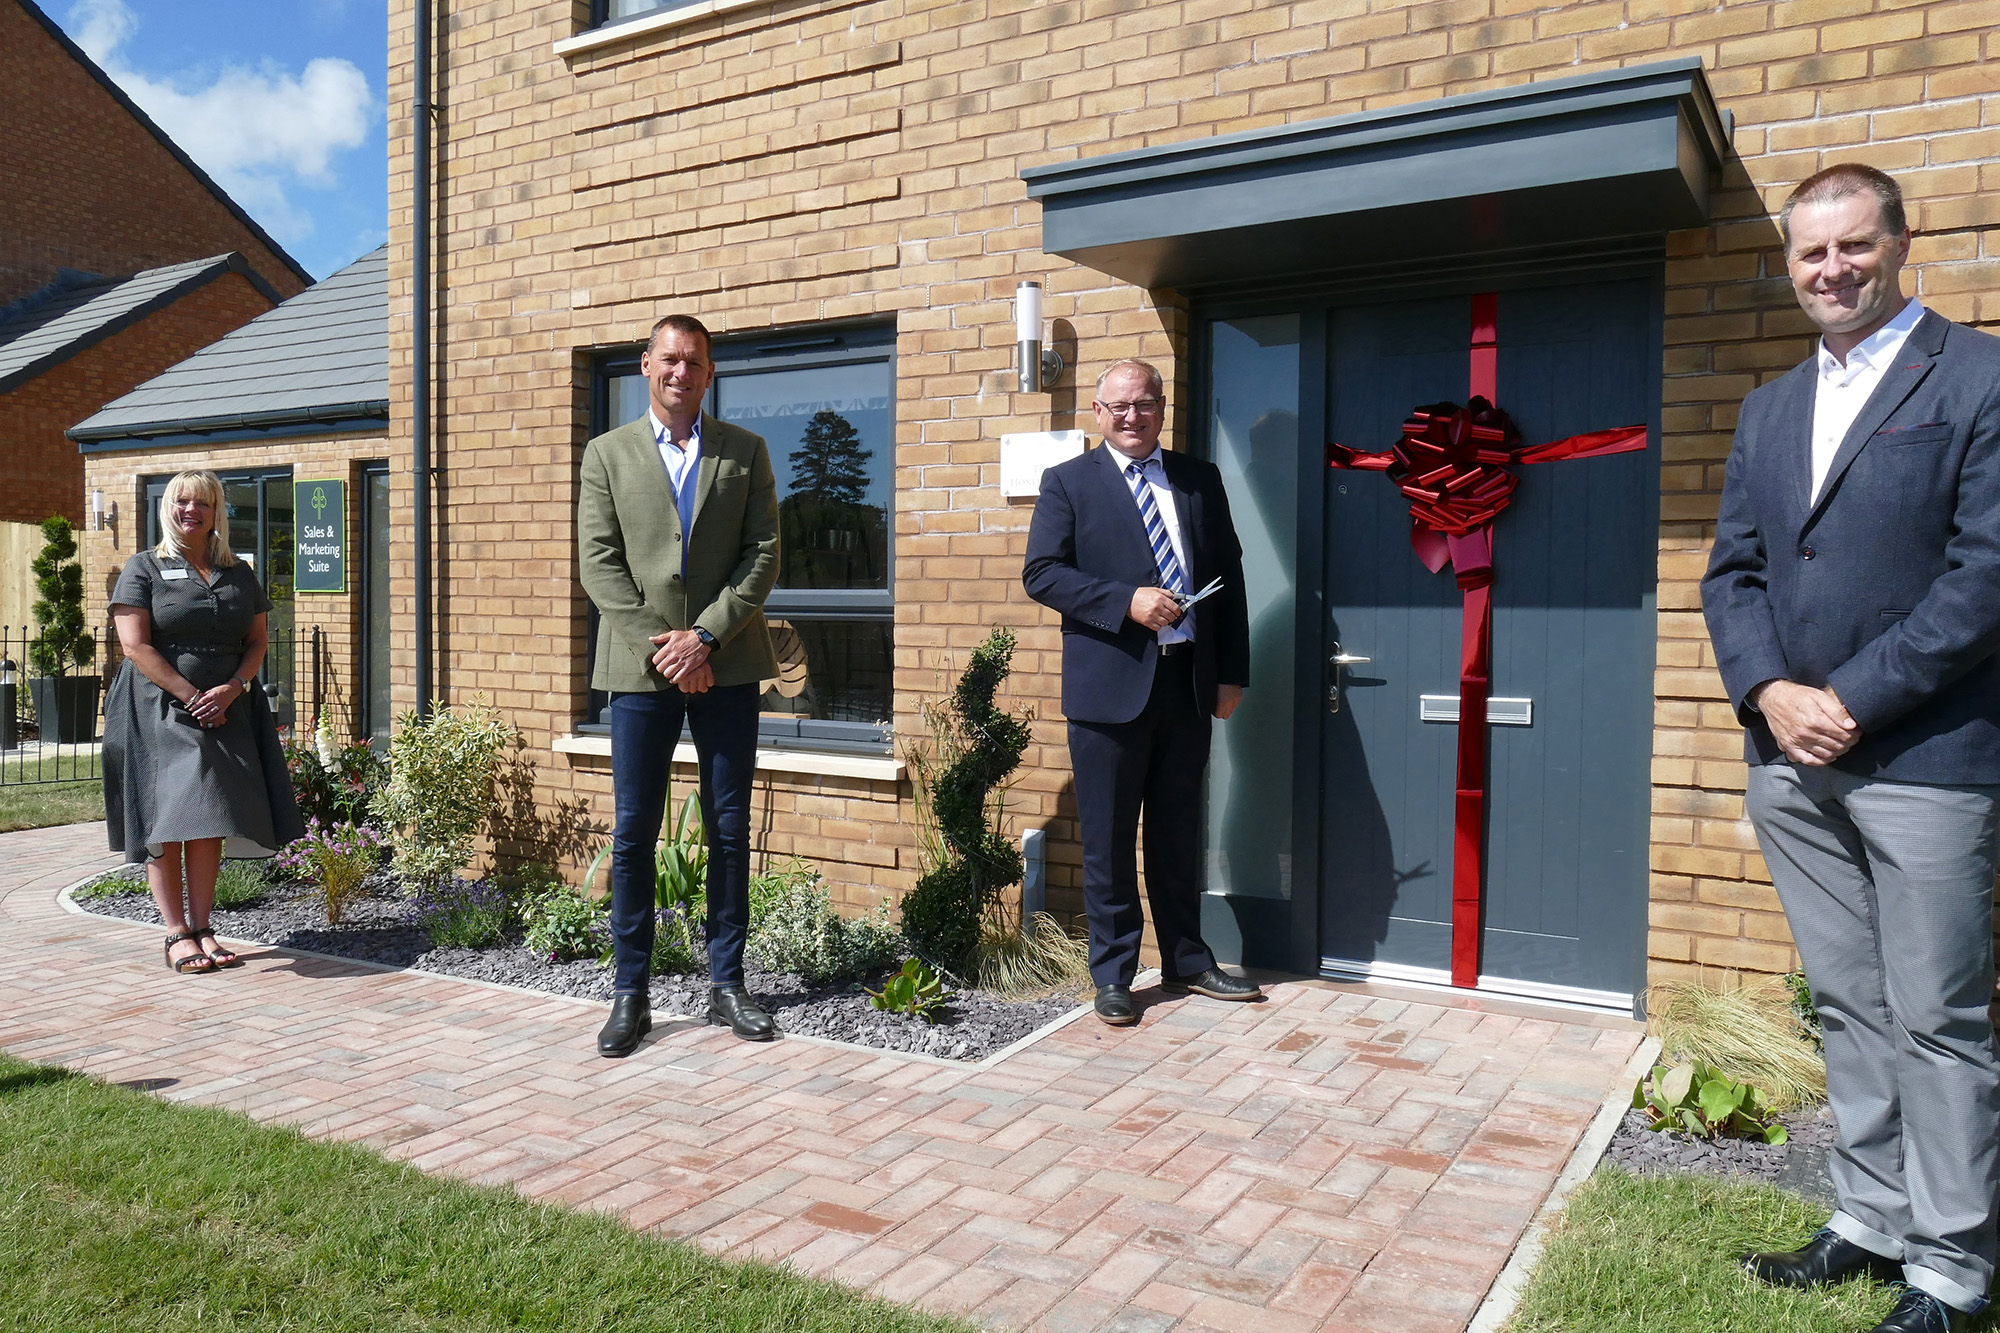 Councillor officially opened 'outstanding' new development in Barnstaple